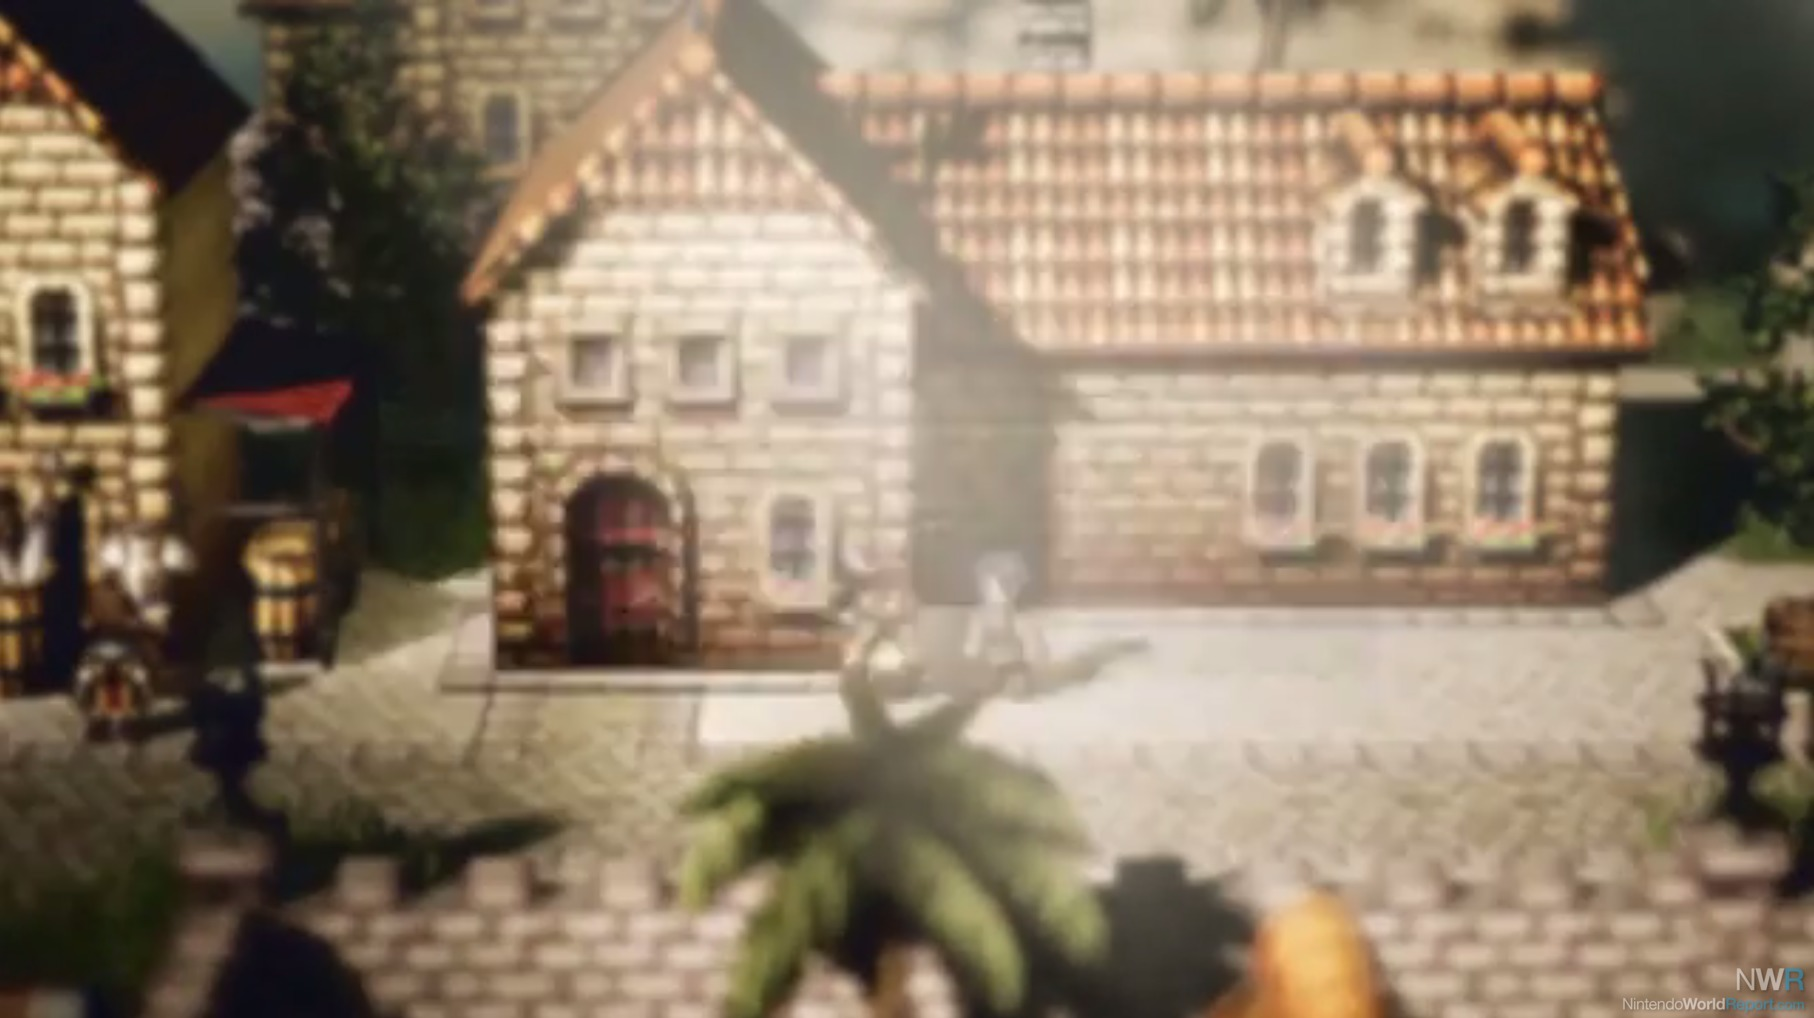 Square Enix's Octopath Traveler arriving on July 13 for Nintendo Switch